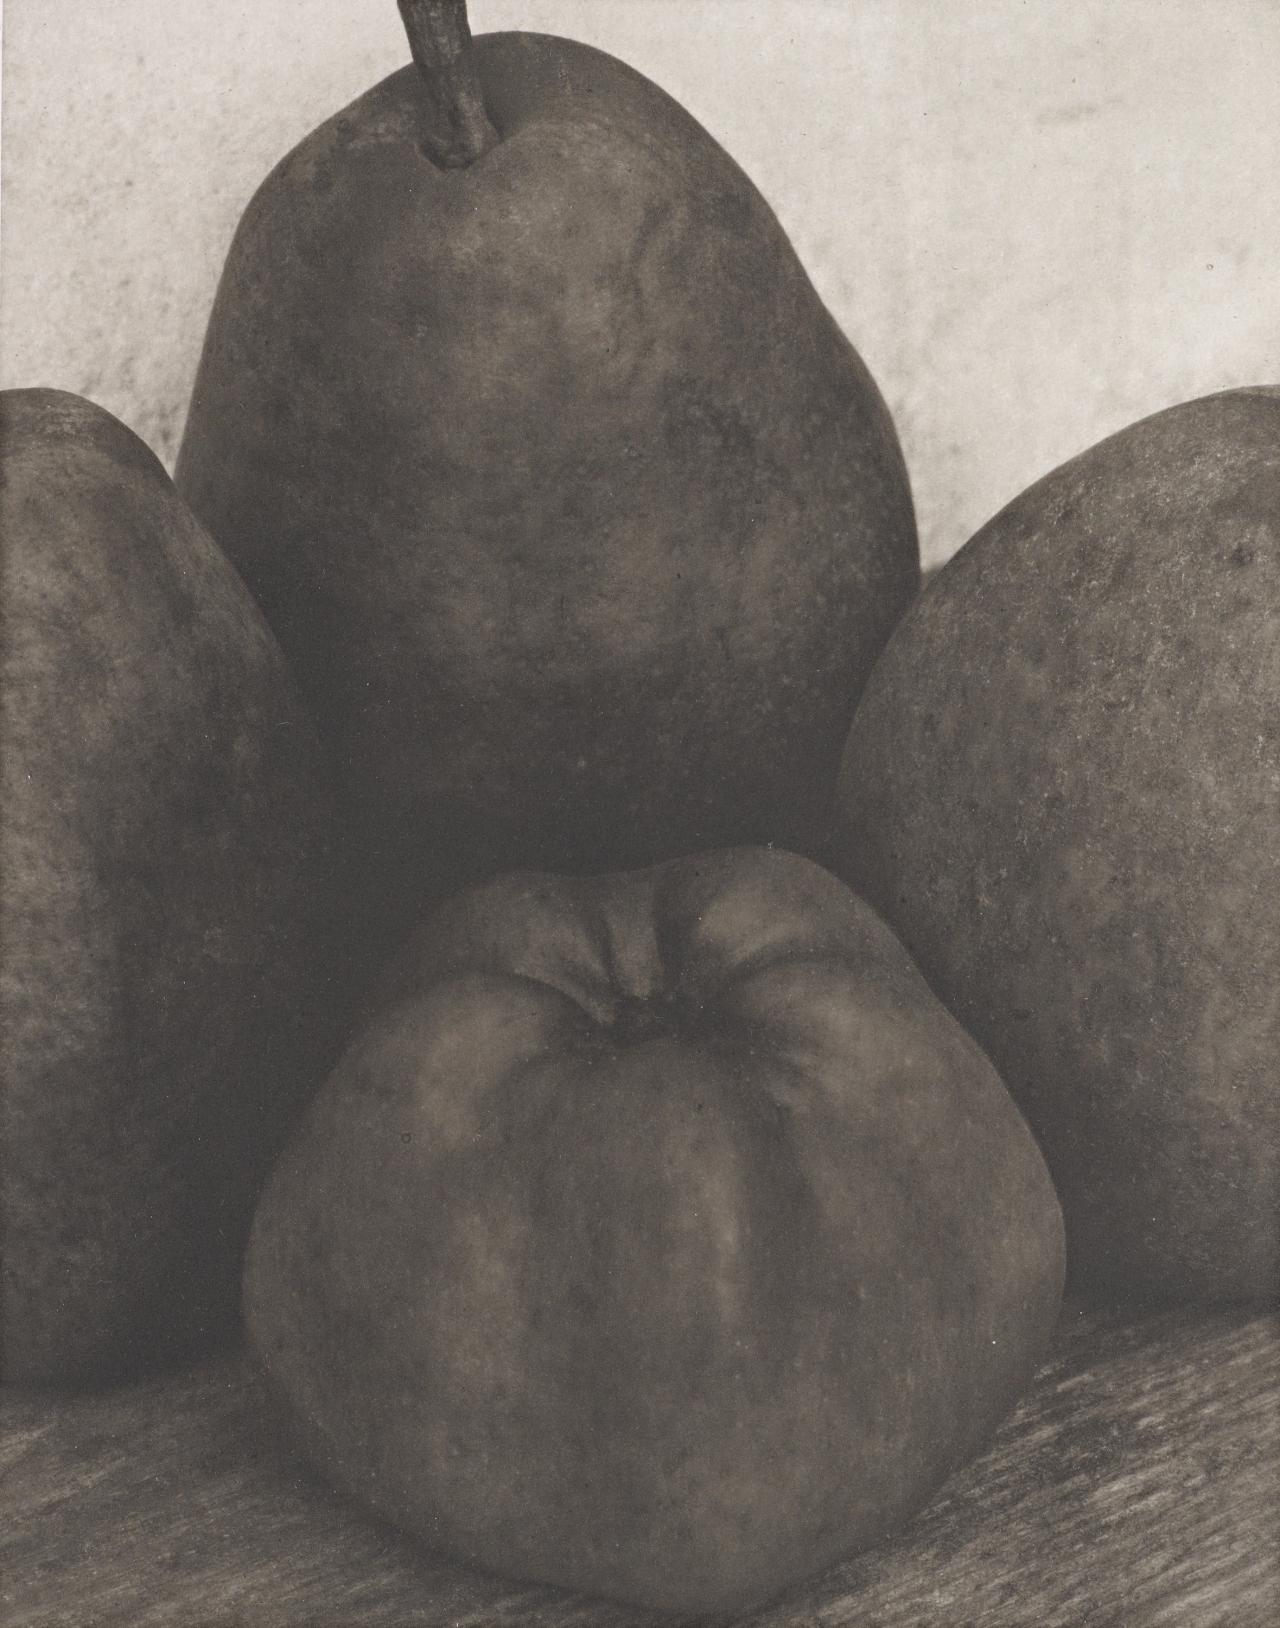 Three pears and an apple